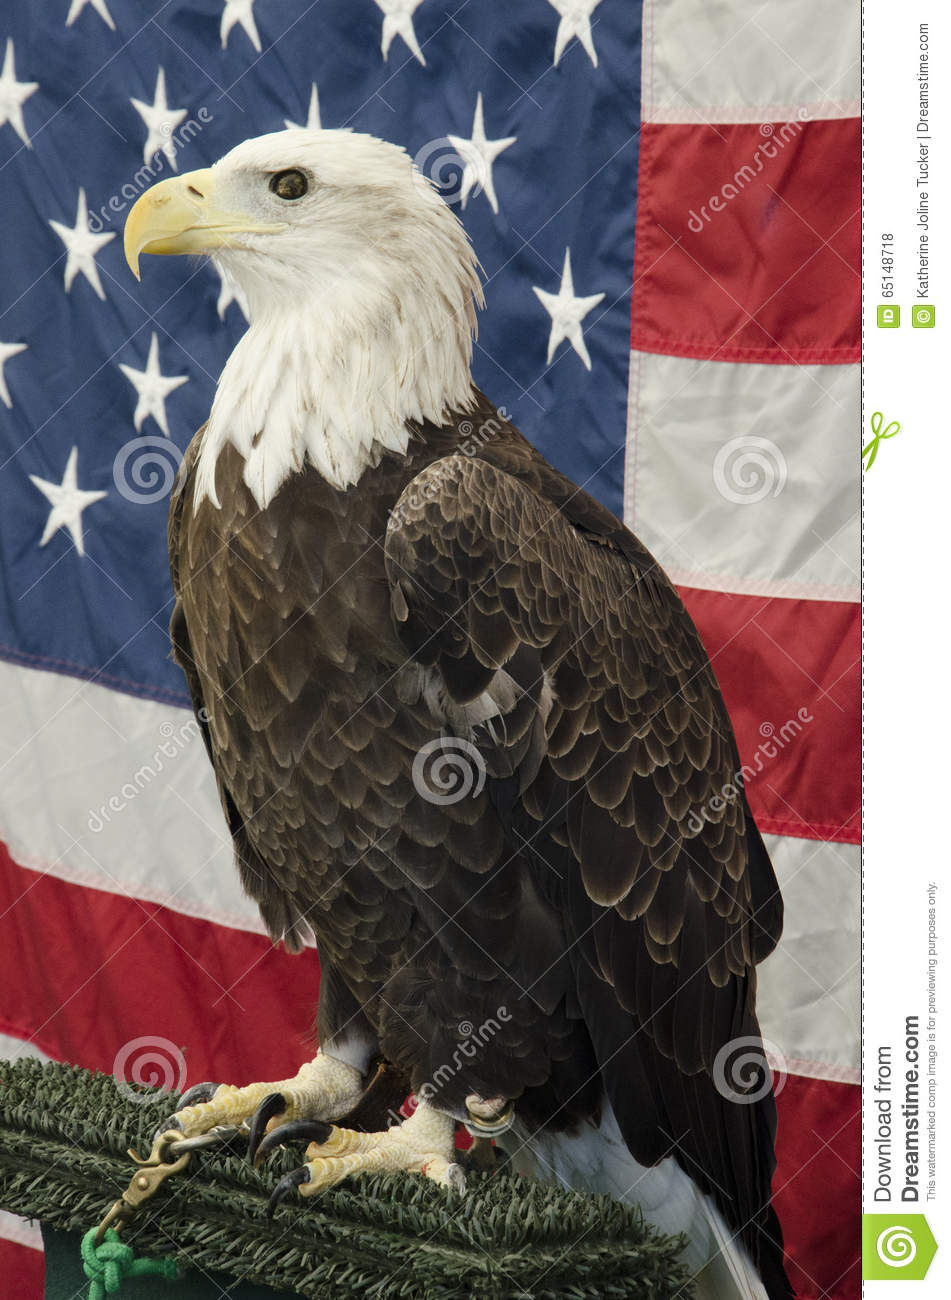 American Bald Eagle In Front Of American Flag Stock Photo Image Of